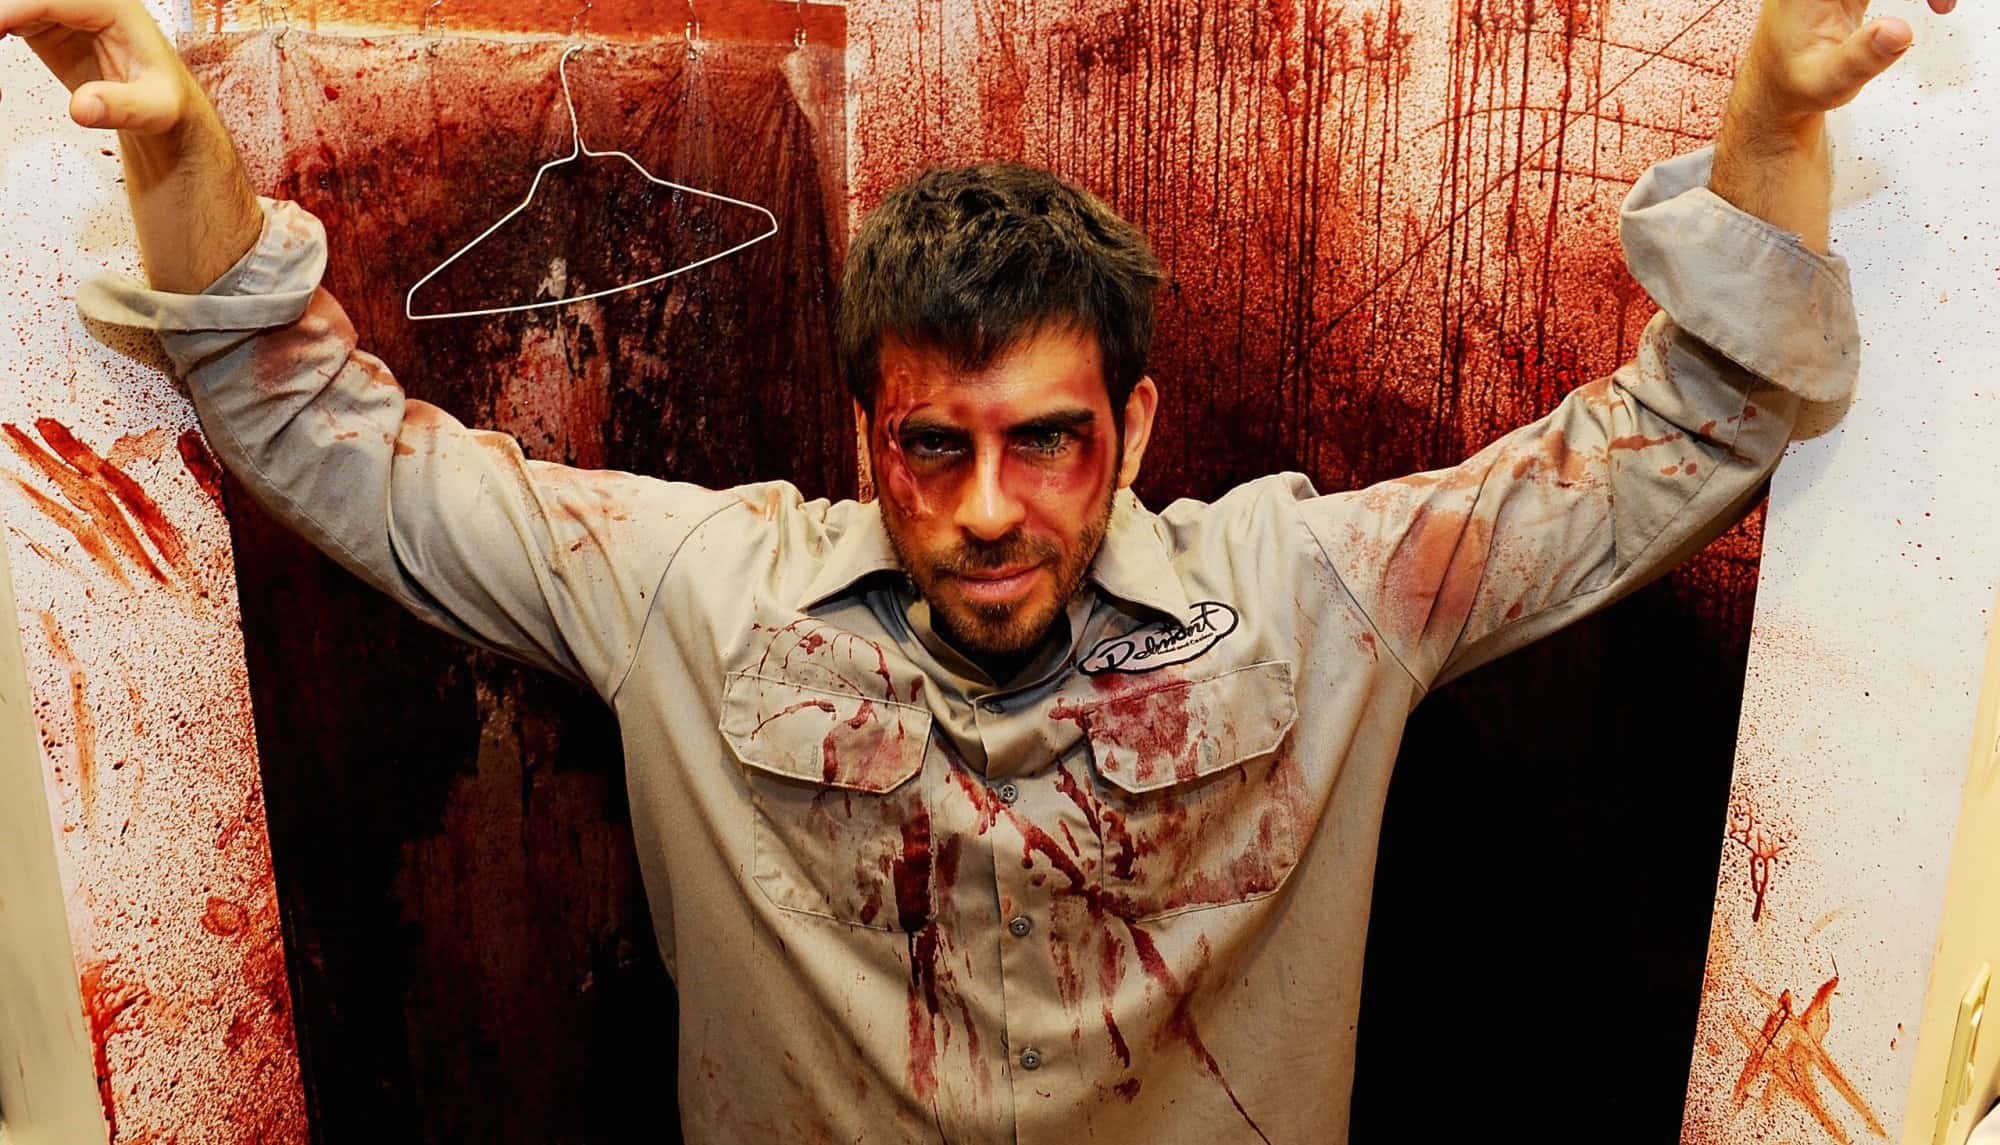 Eli Roth Mystery - Could Eli Roth Help Fill the Void Wes Craven Left Behind?